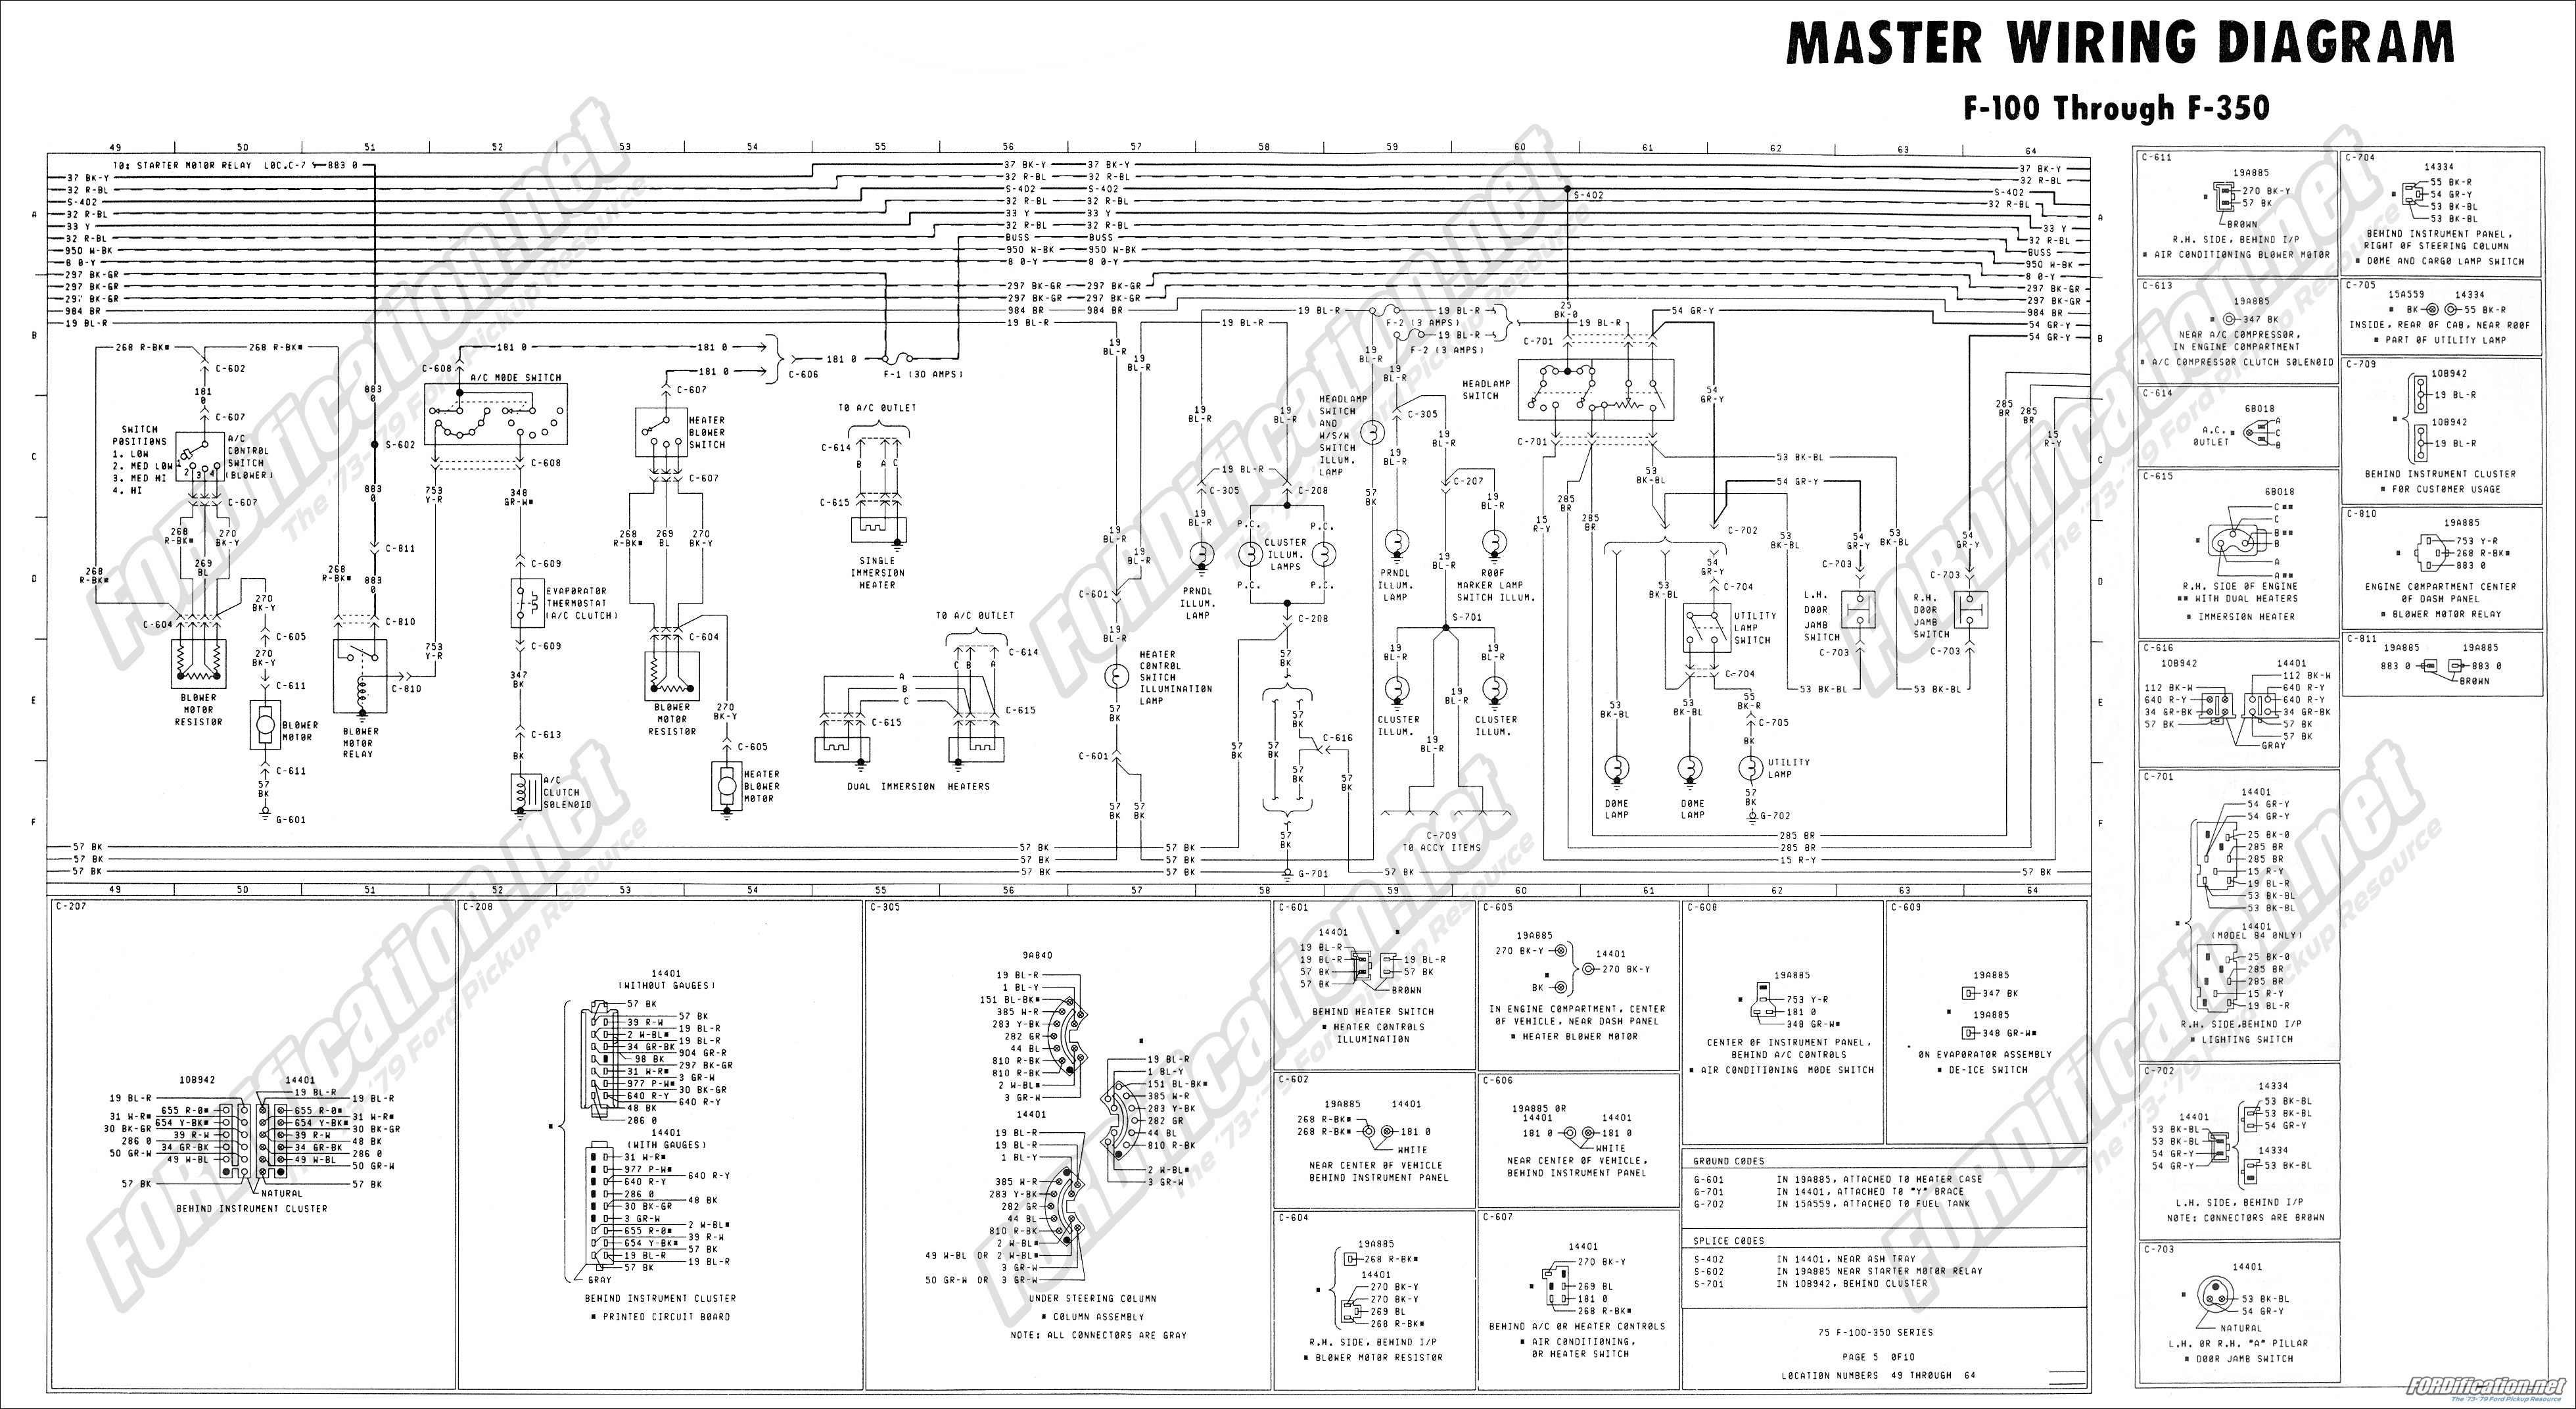 1999 ford 550 Tailight Diagram 1973 1979 ford Truck Wiring Diagrams & Schematics Of 1999 ford 550 Tailight Diagram